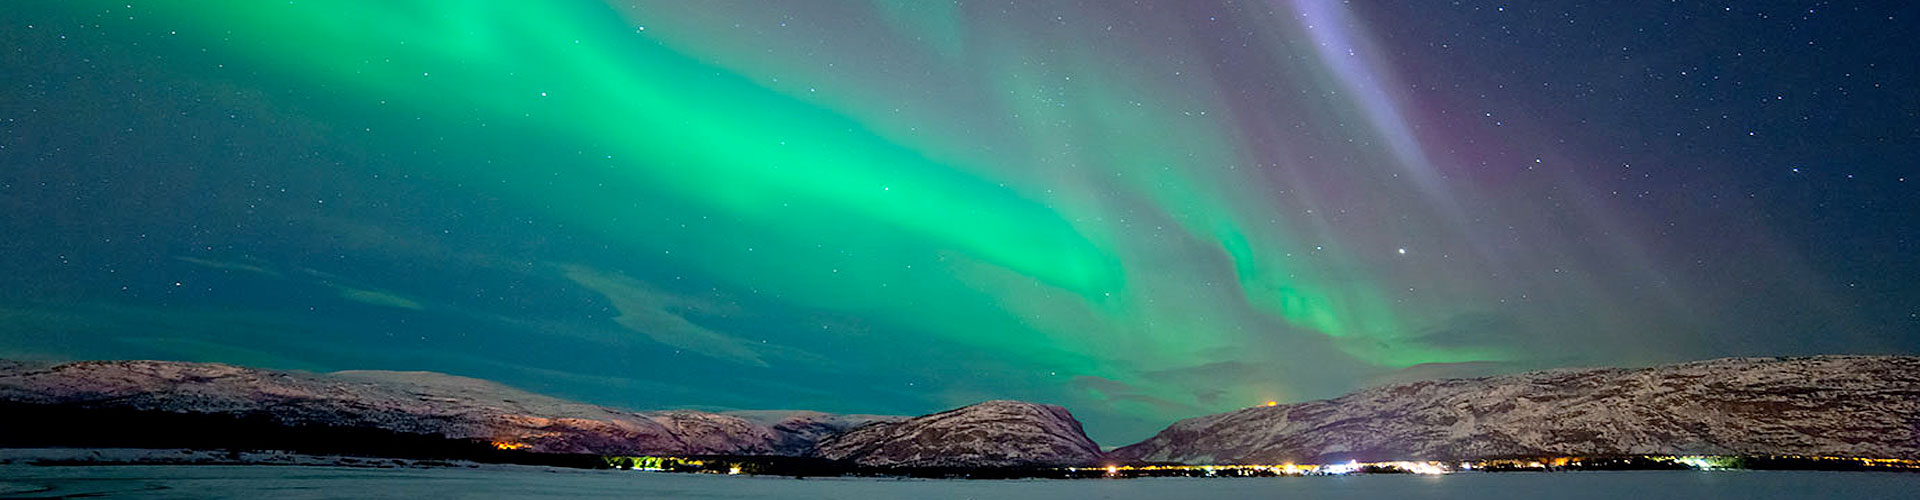 THE CITY OF NORTHERN LIGHTS - ALTA, NORWAY